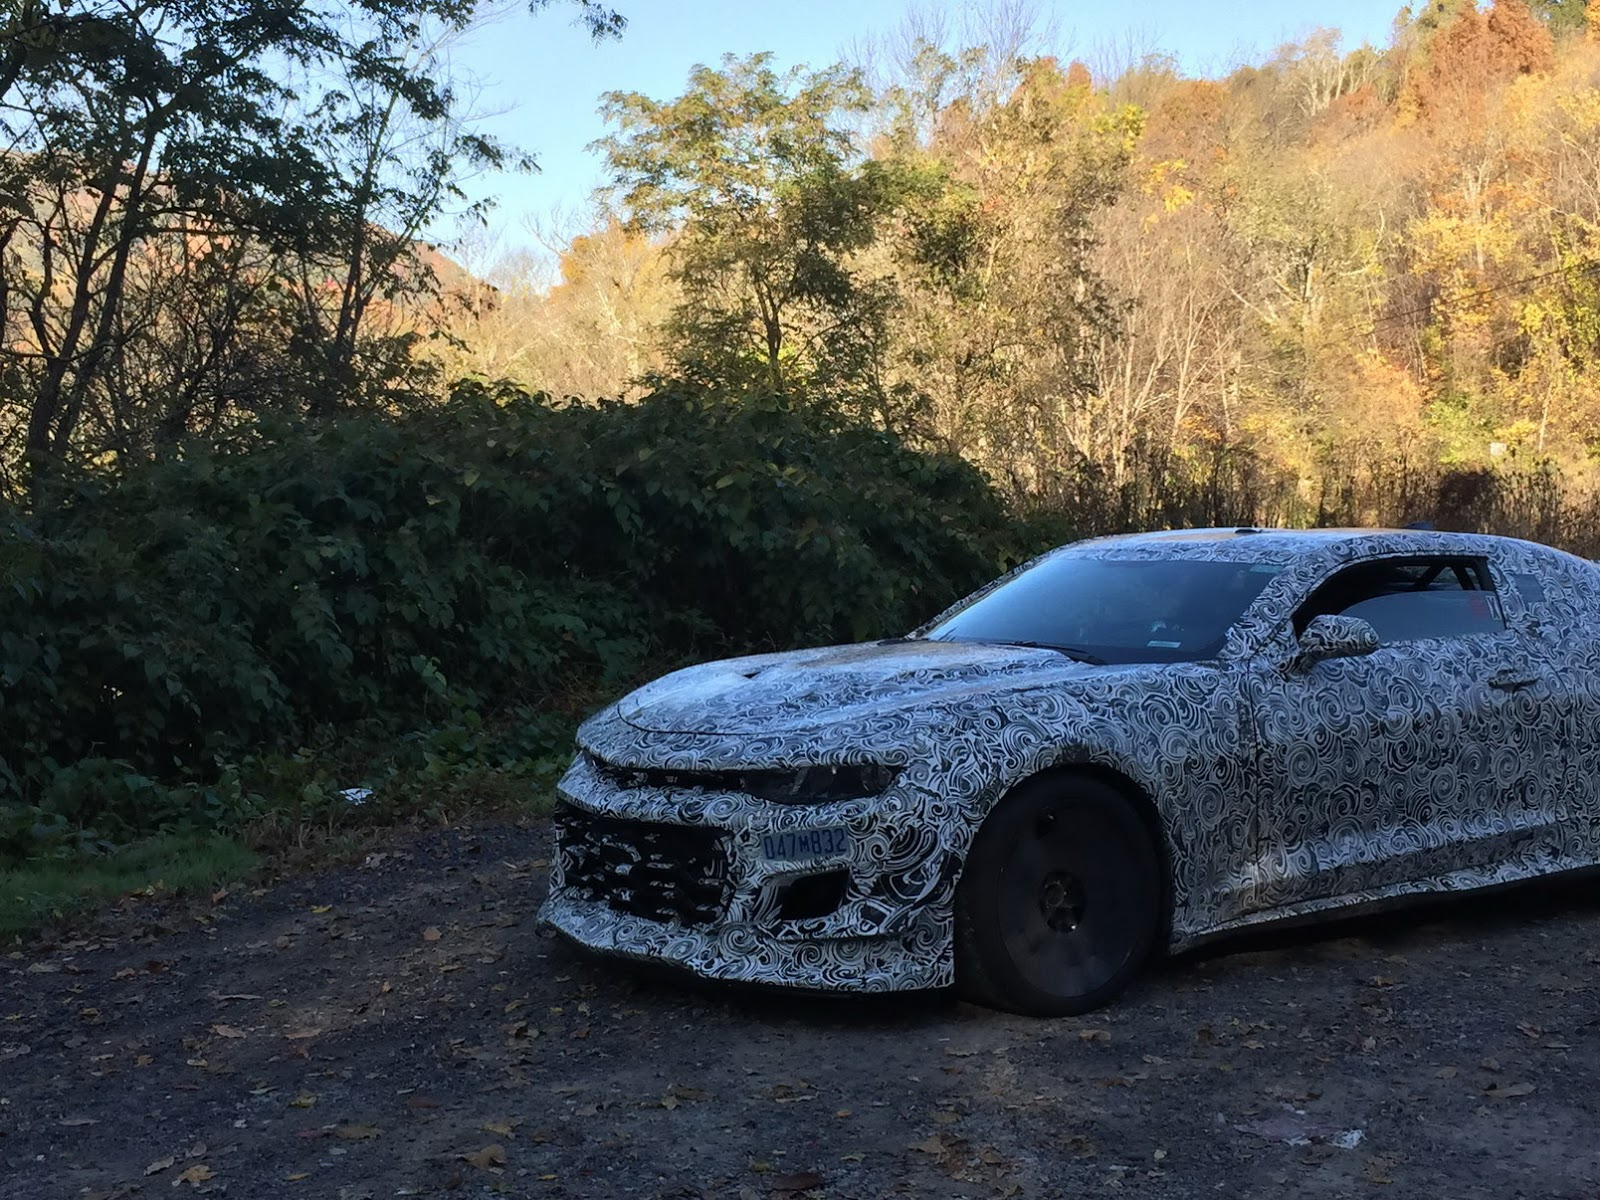 2018 Chevrolet Camaro Z 28 Prototypes Spied In Virginia